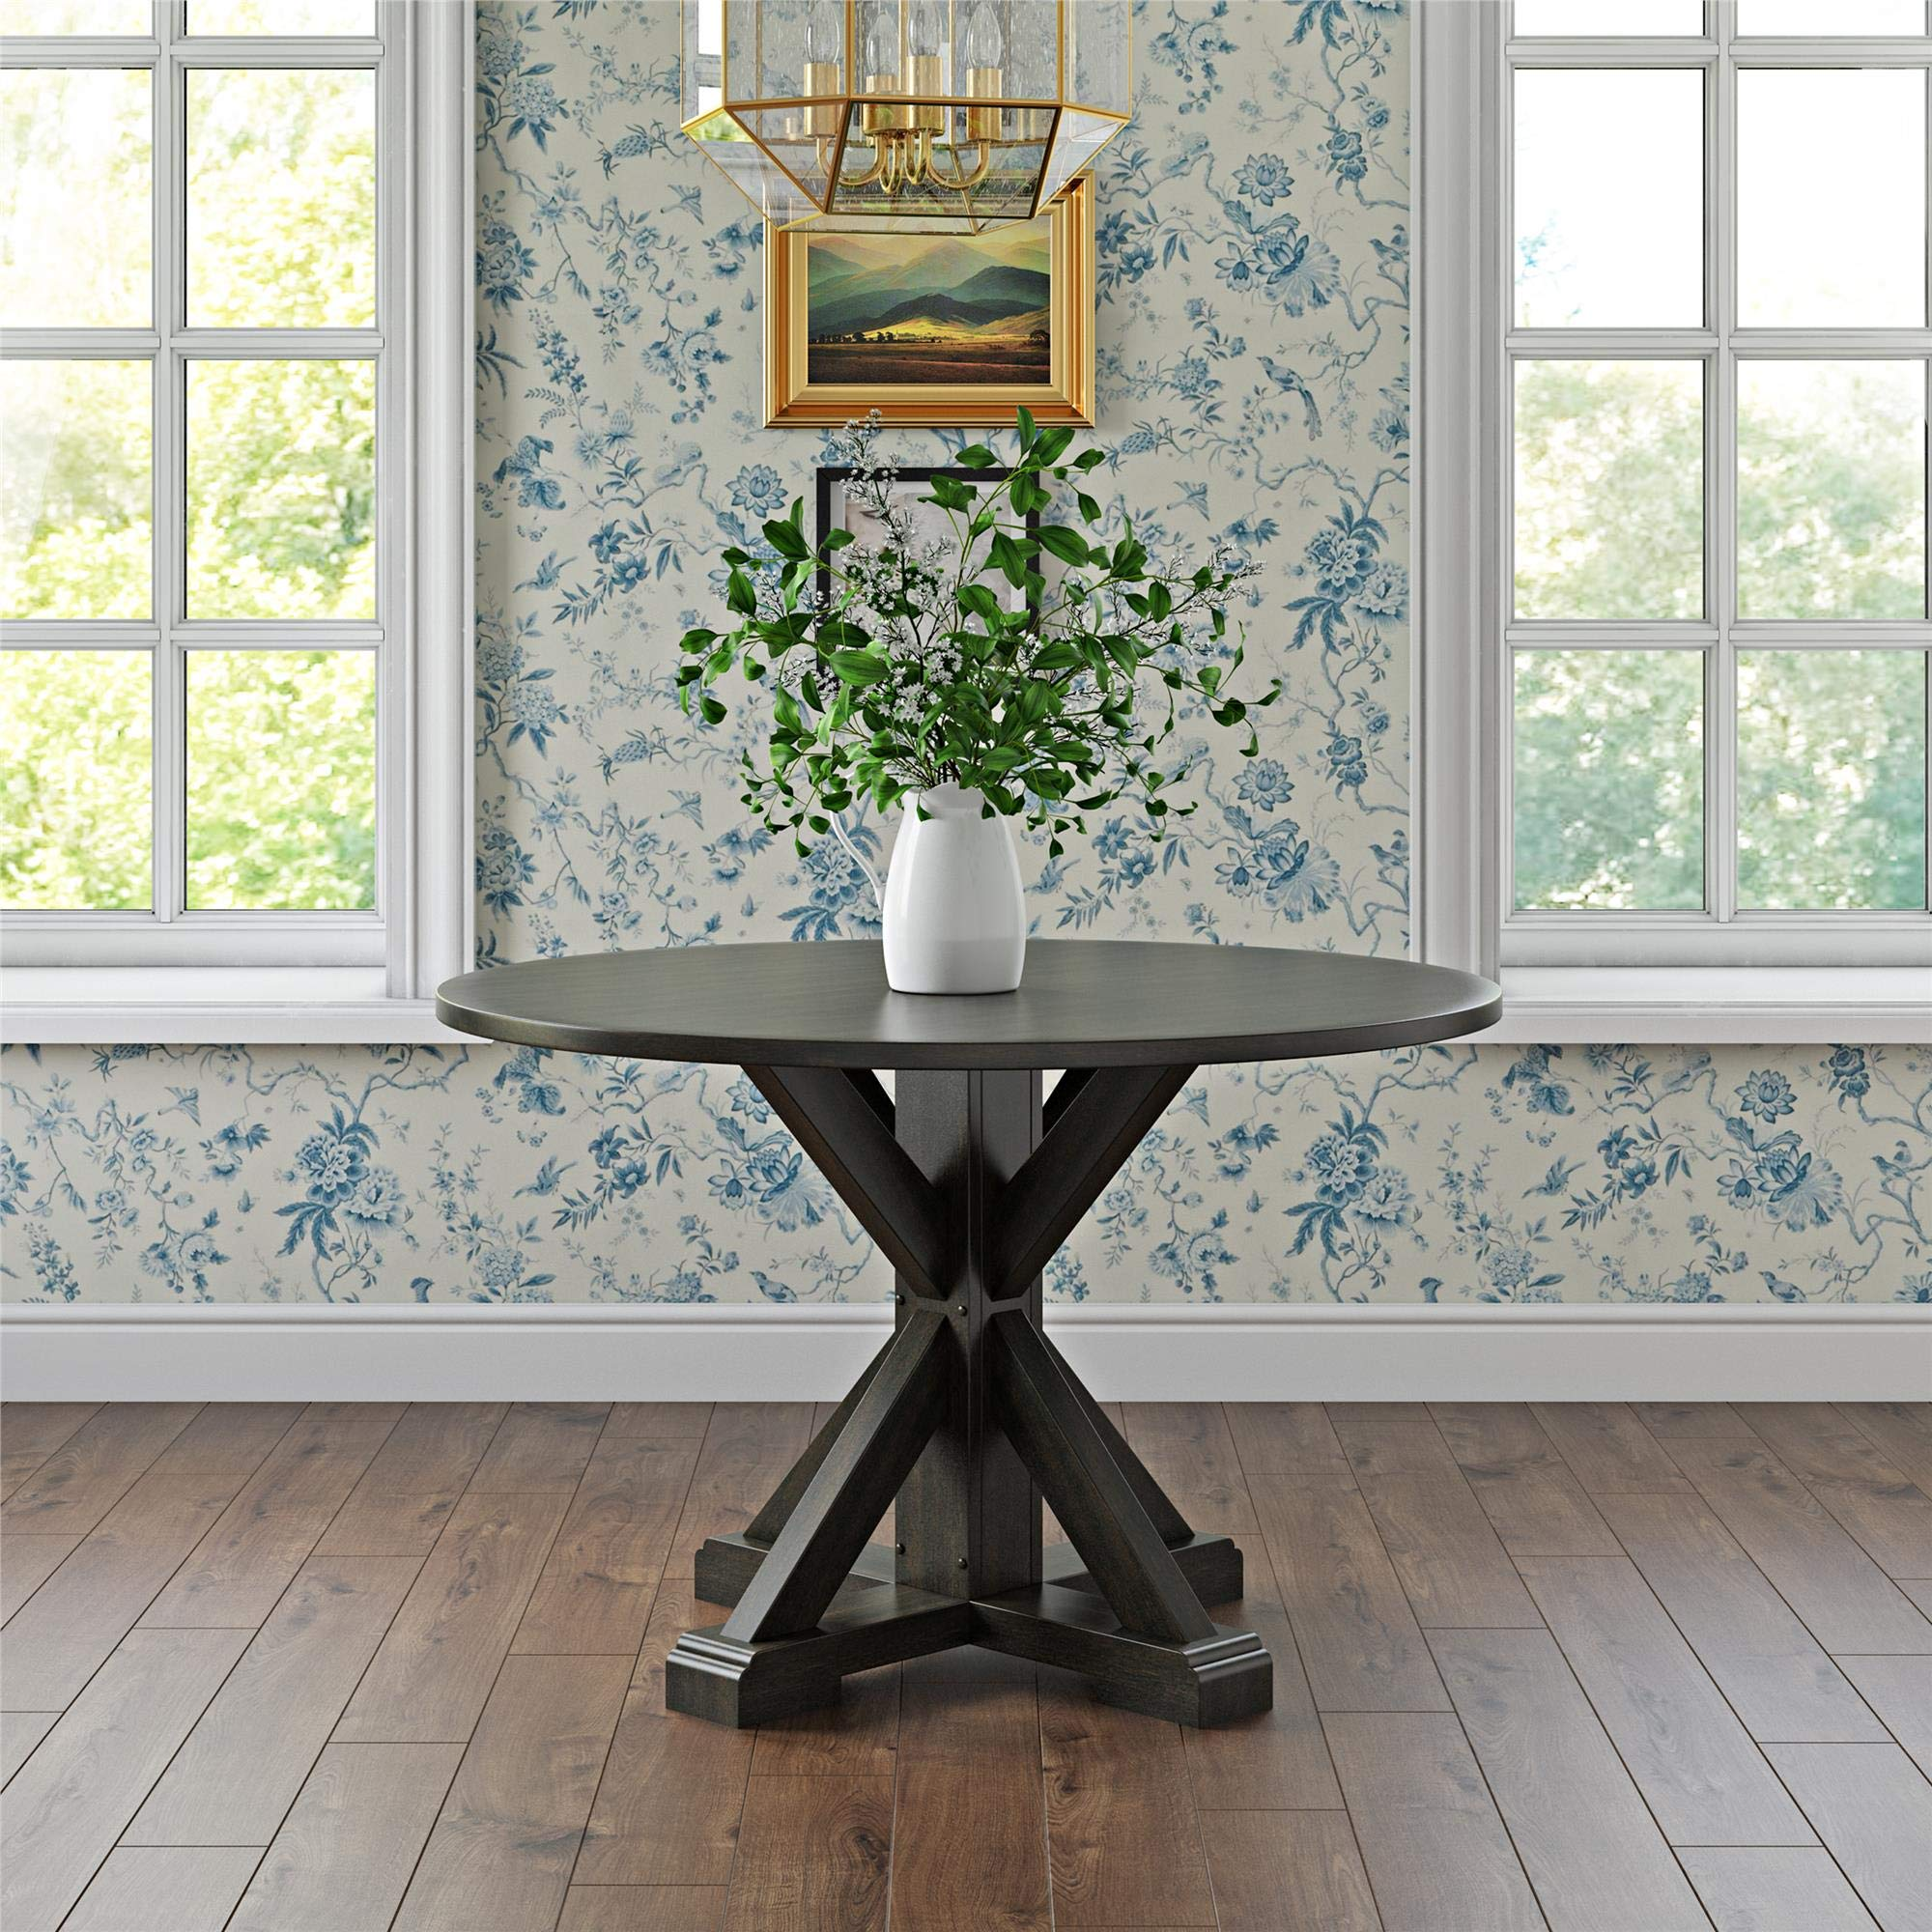 Dorel Living DA8135T Lanley Round, Rustic Brown Dining Table, by Dorel Living (Image #6)